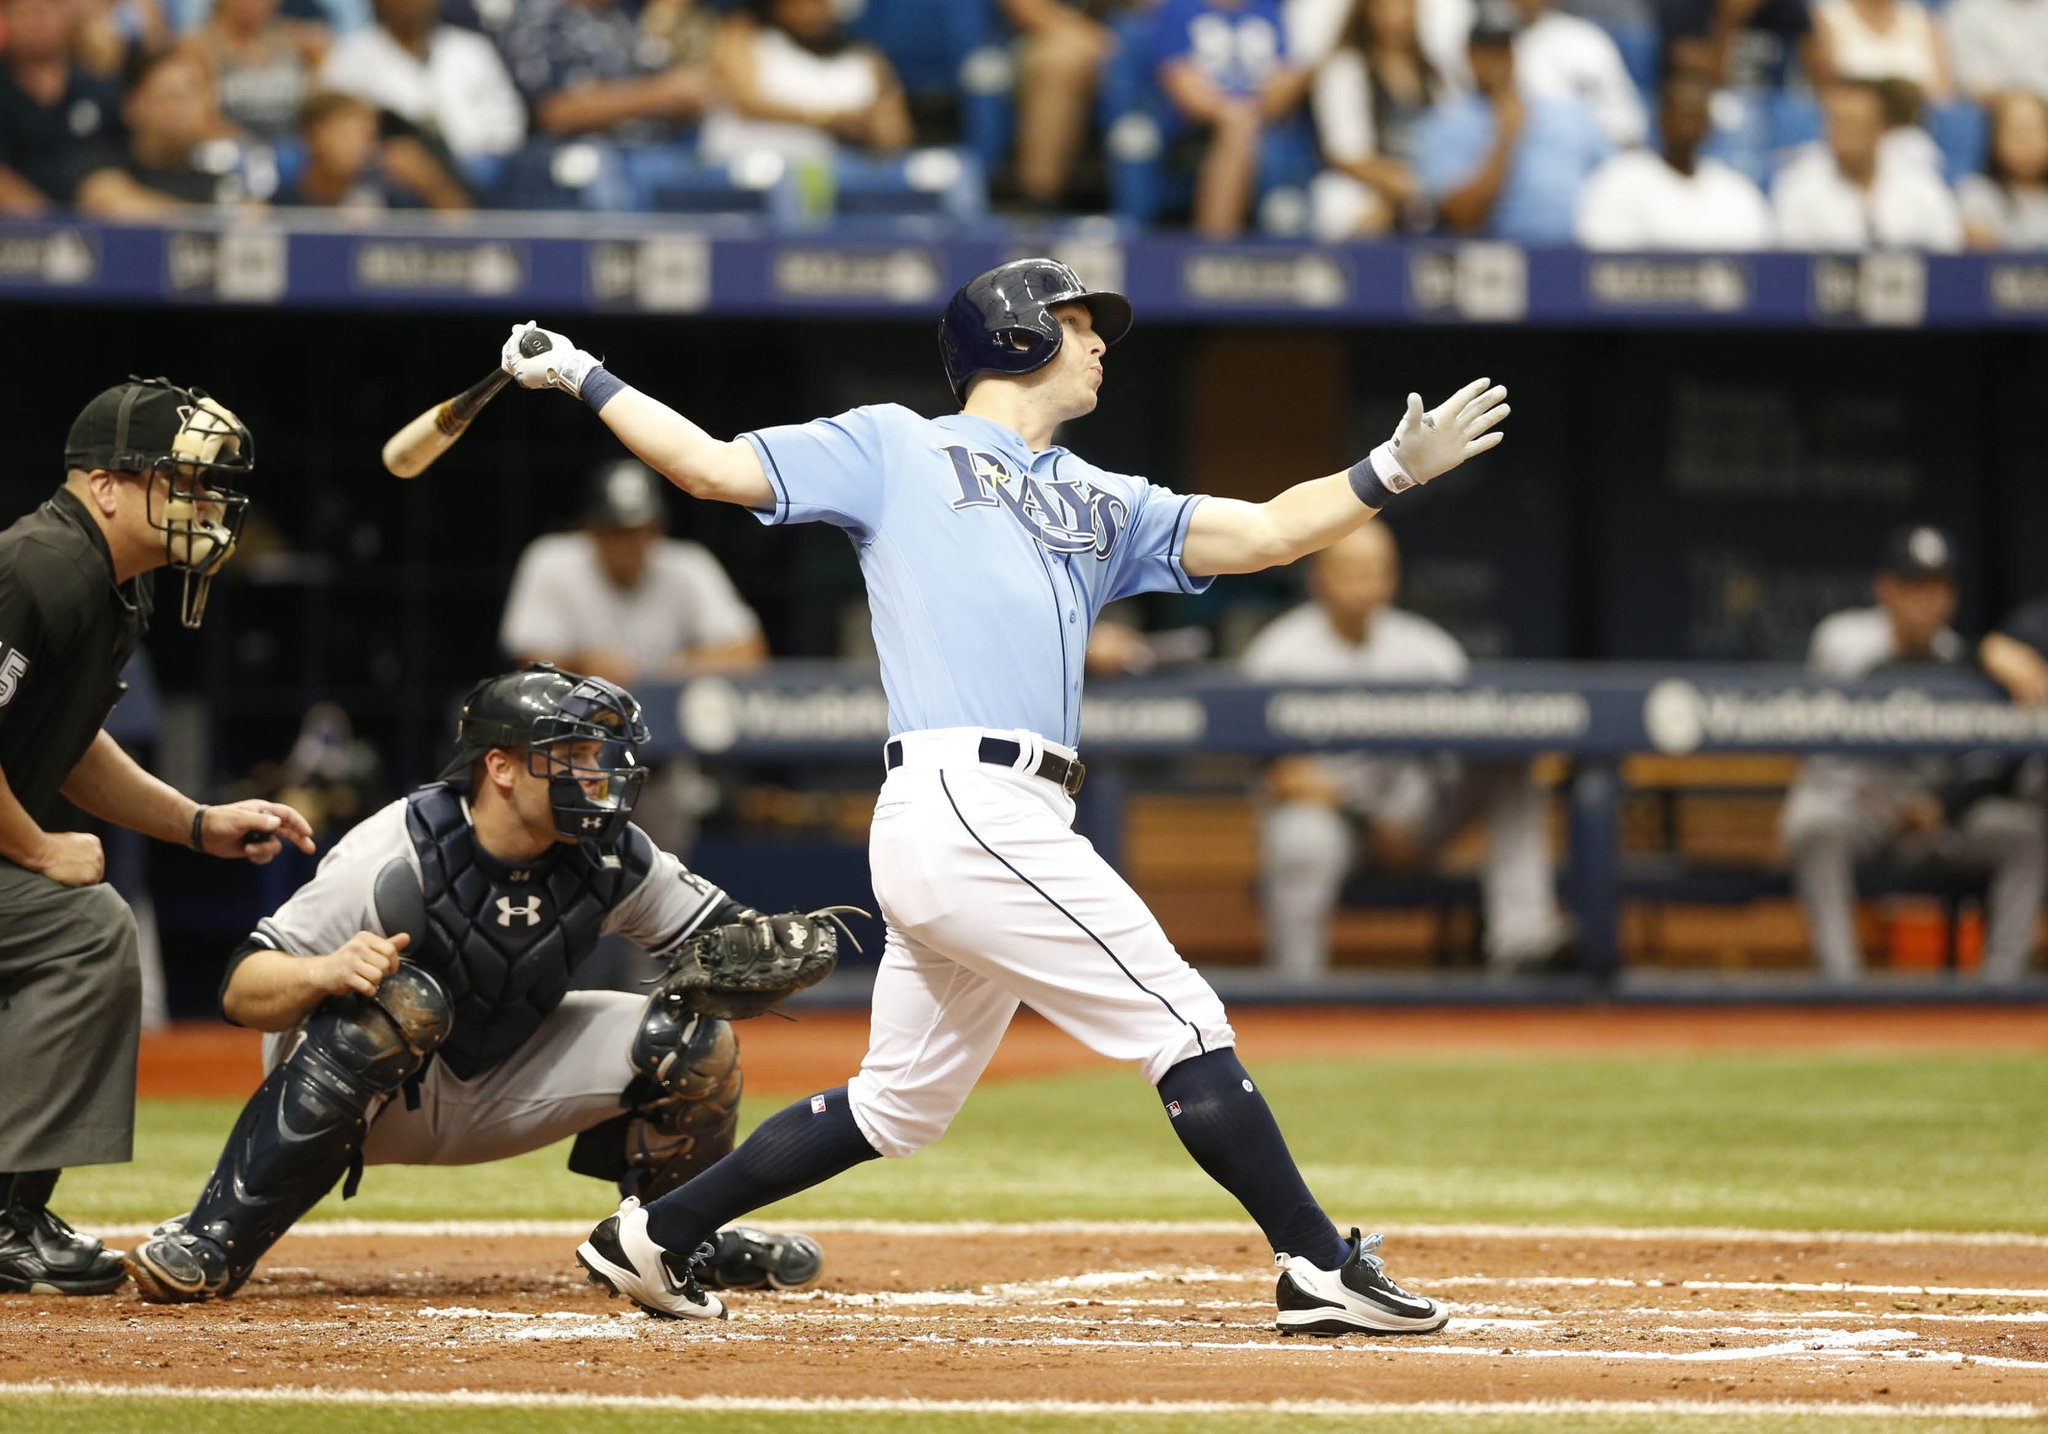 Corey Dickerson now has 36 extra base hits on the season. (Photo Credit: Tampa Bay Rays)